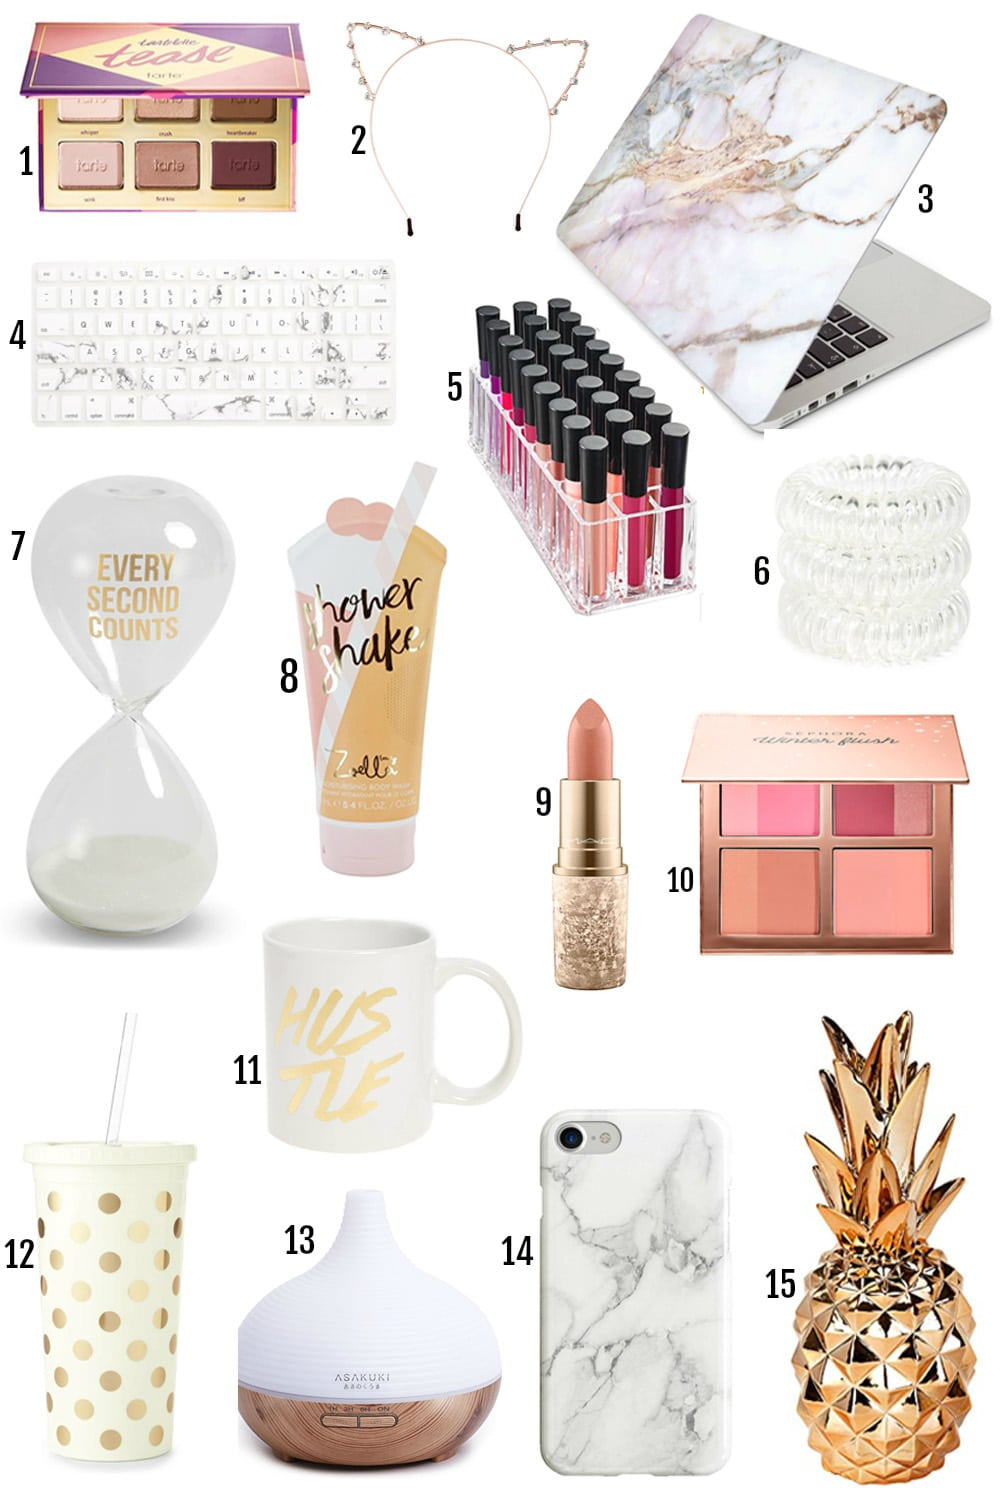 The Best Gifts For Her Under 25 Gift Guide Mash Elle